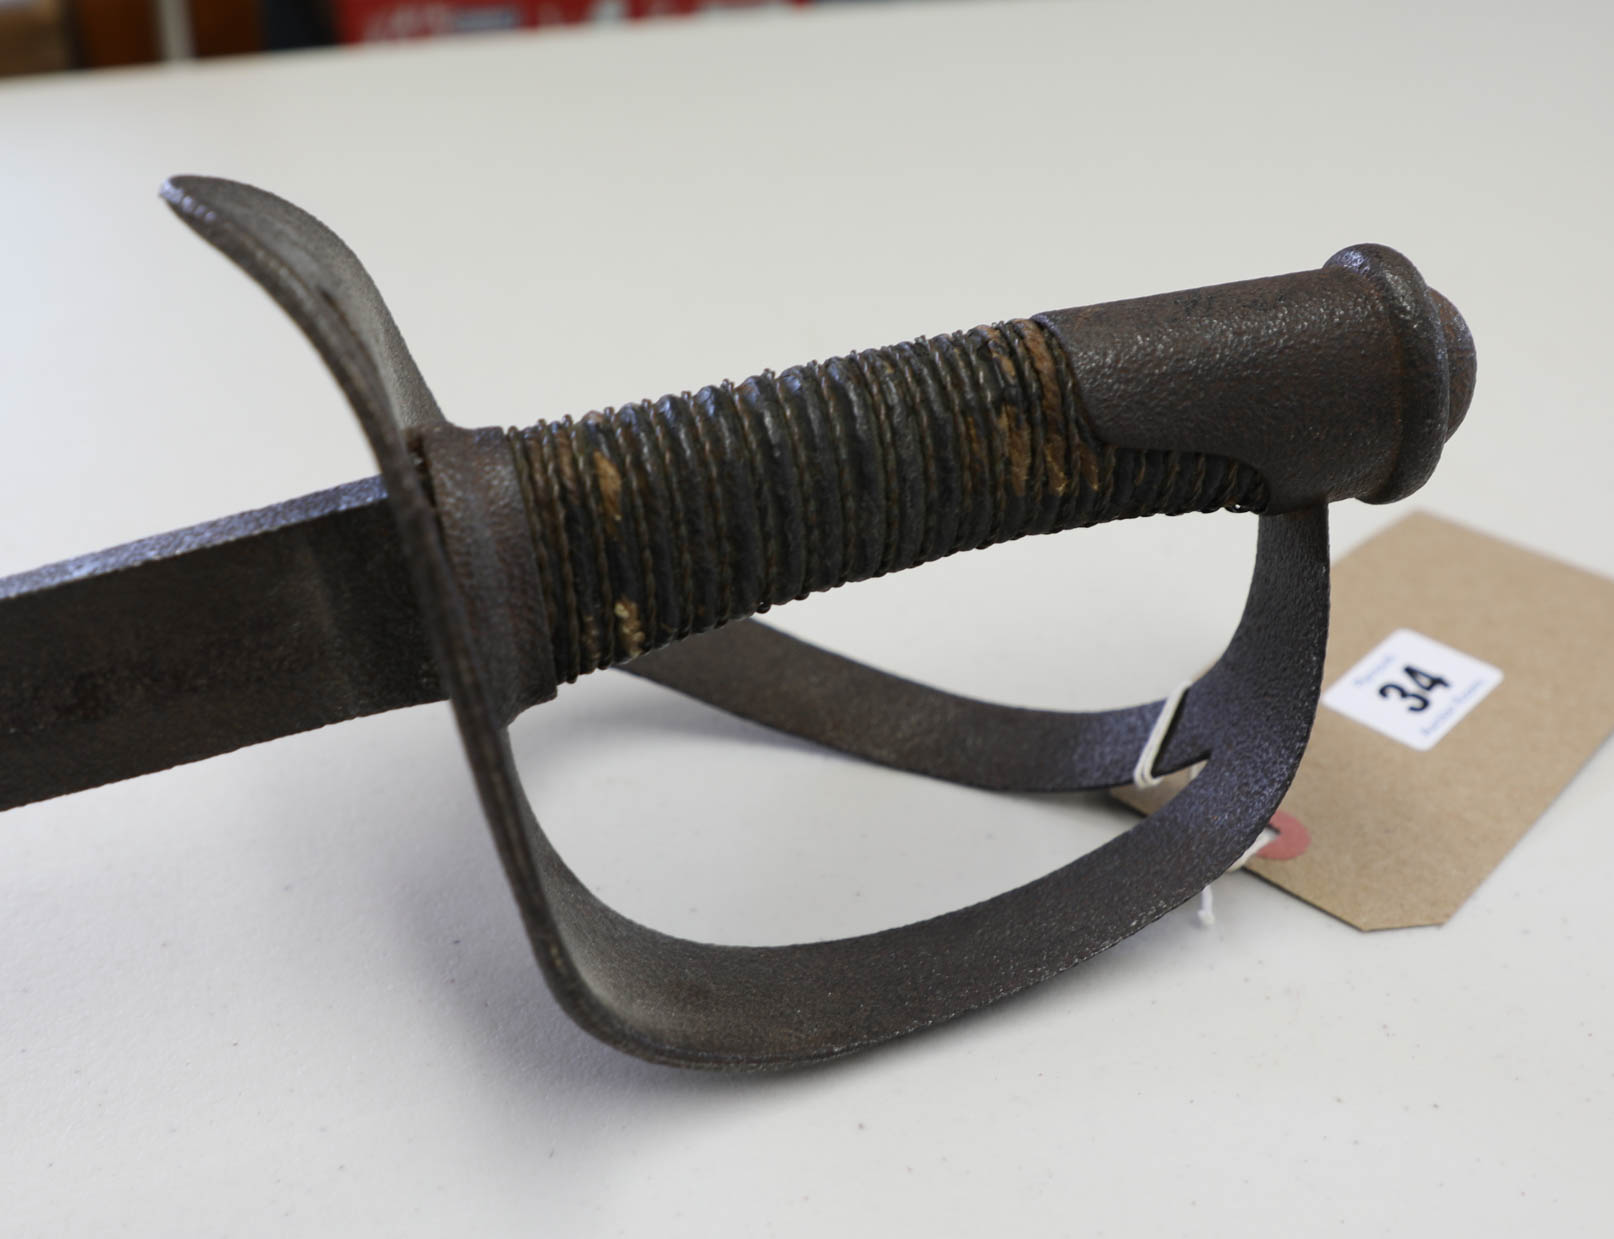 Lot 034 - A 19th century sword with straight blade, basket hilt, length 106cm.